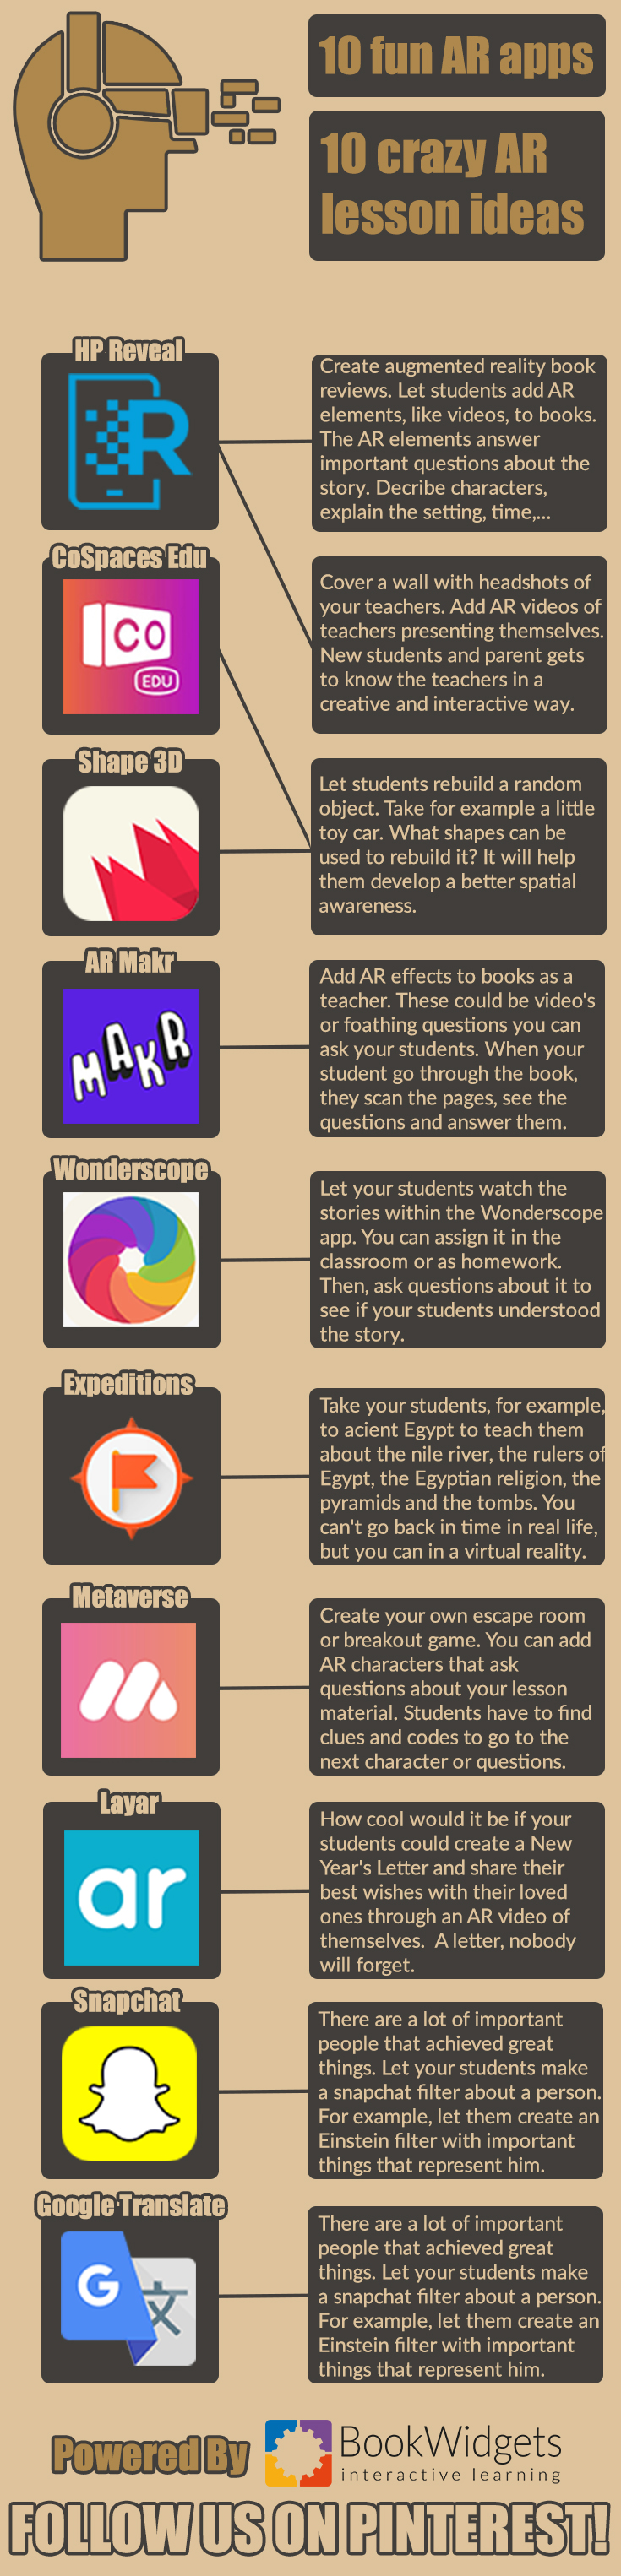 10 Fun augmented reality apps for teachers to use in the